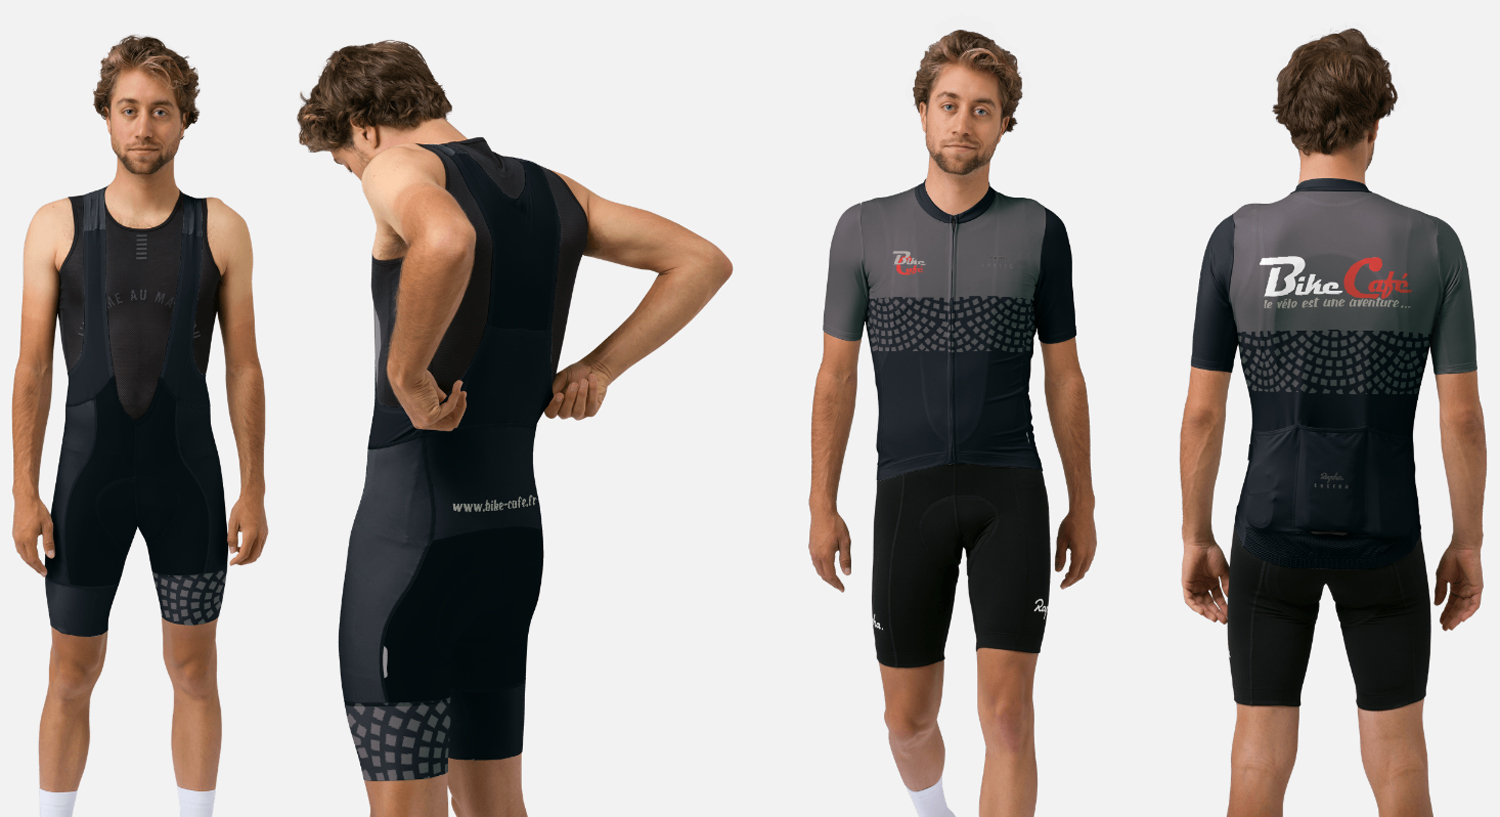 Rapha custom bike café cycling apparel